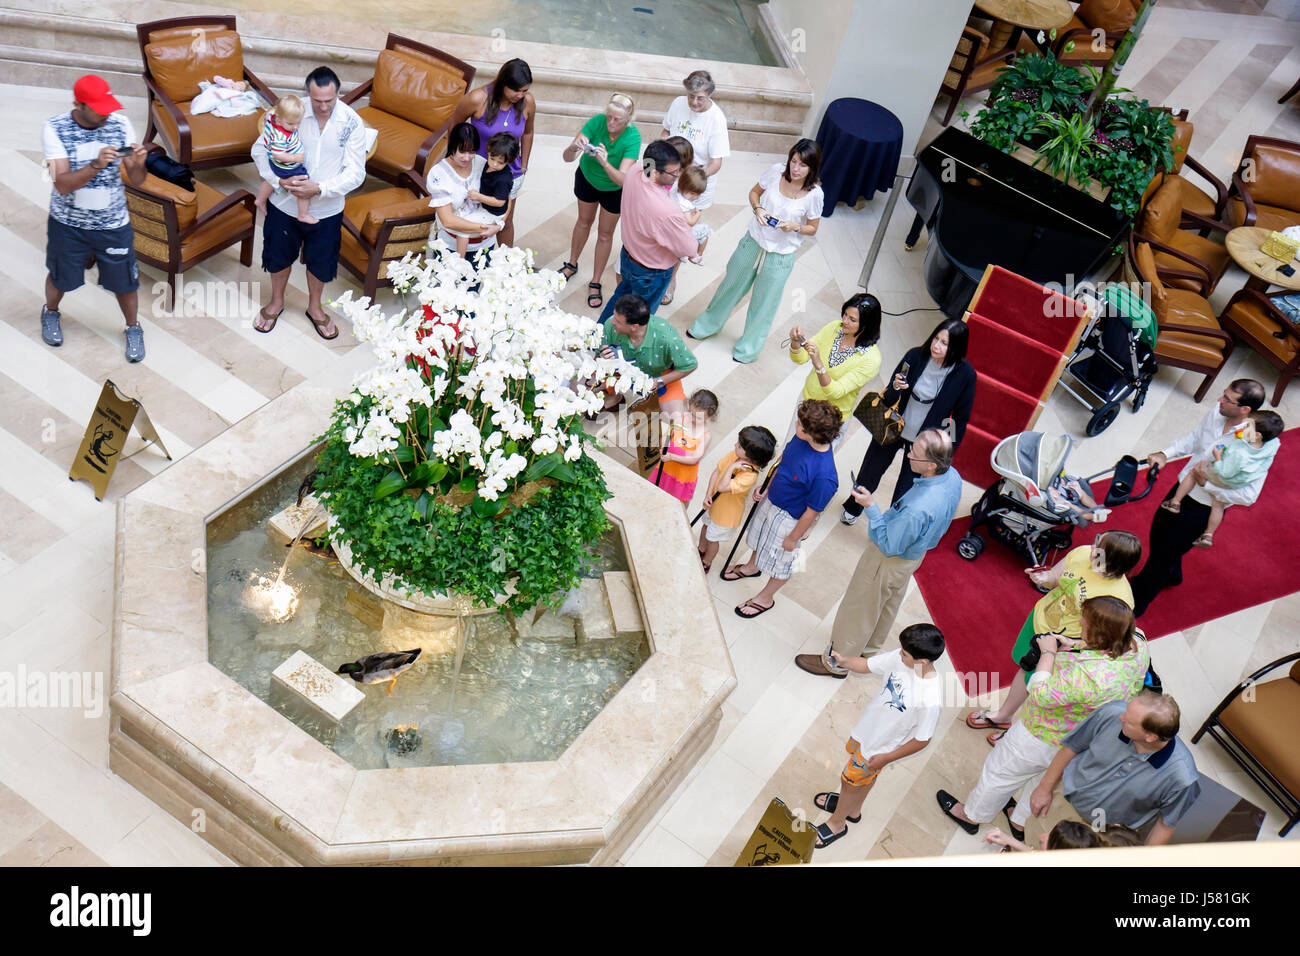 Orlando Florida International Drive The Peabody Orlando hotel Duck March lobby fountain tradition guests children - Stock Image